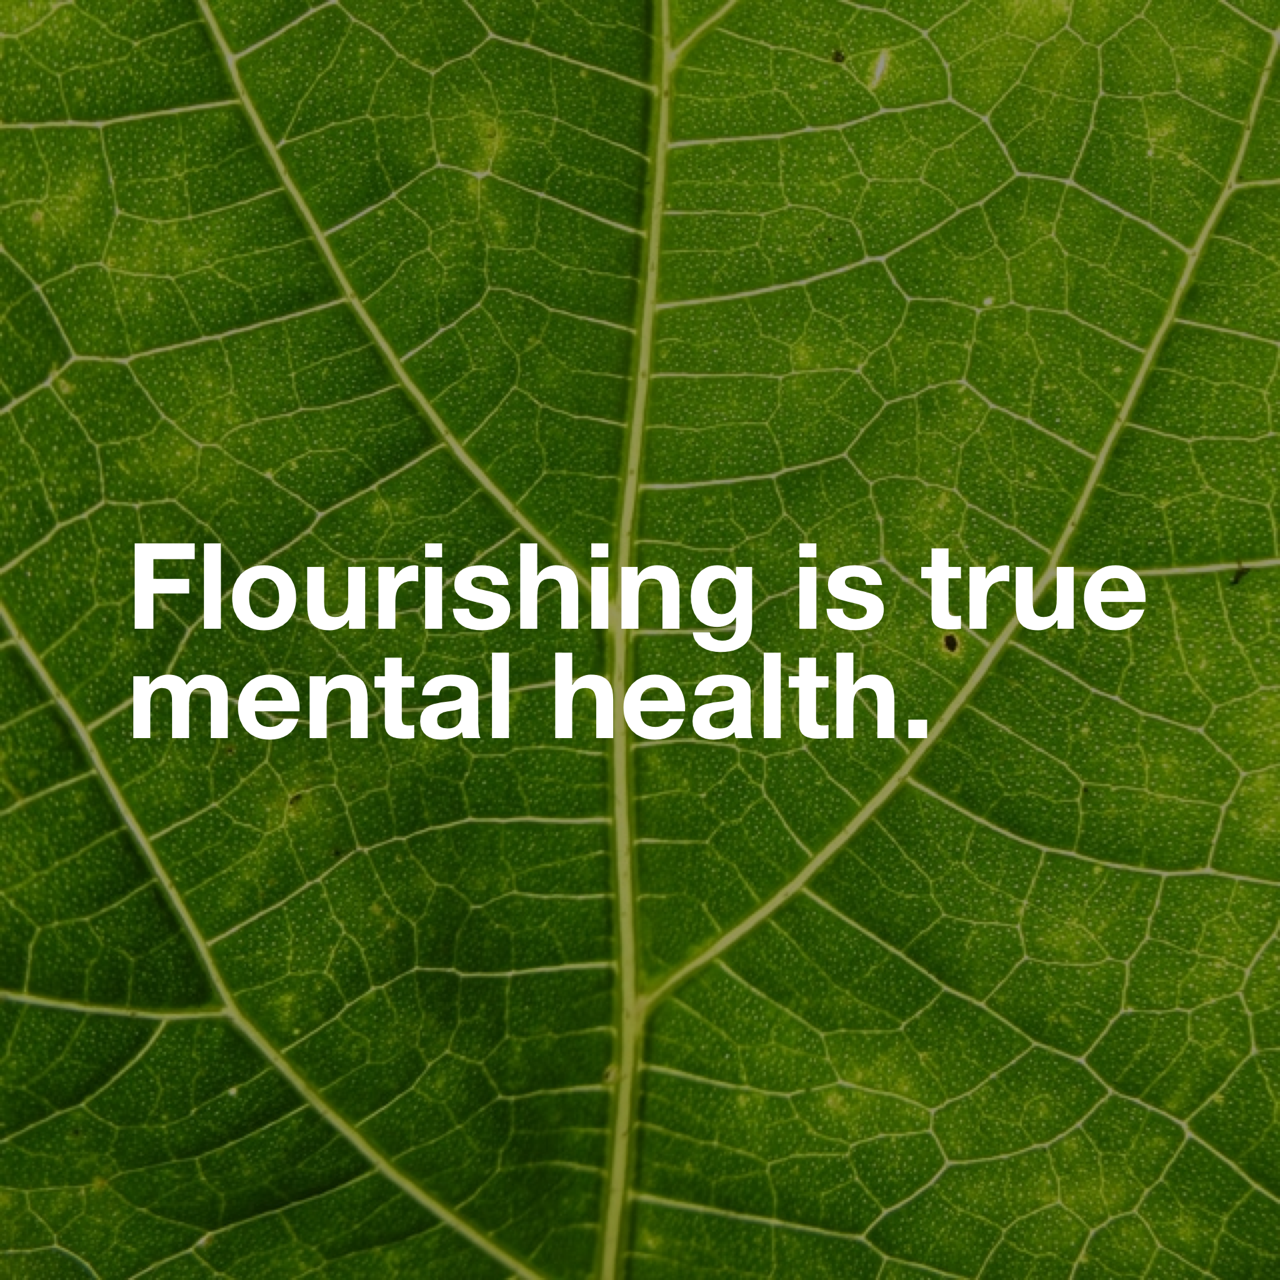 Flourishing is true mental health